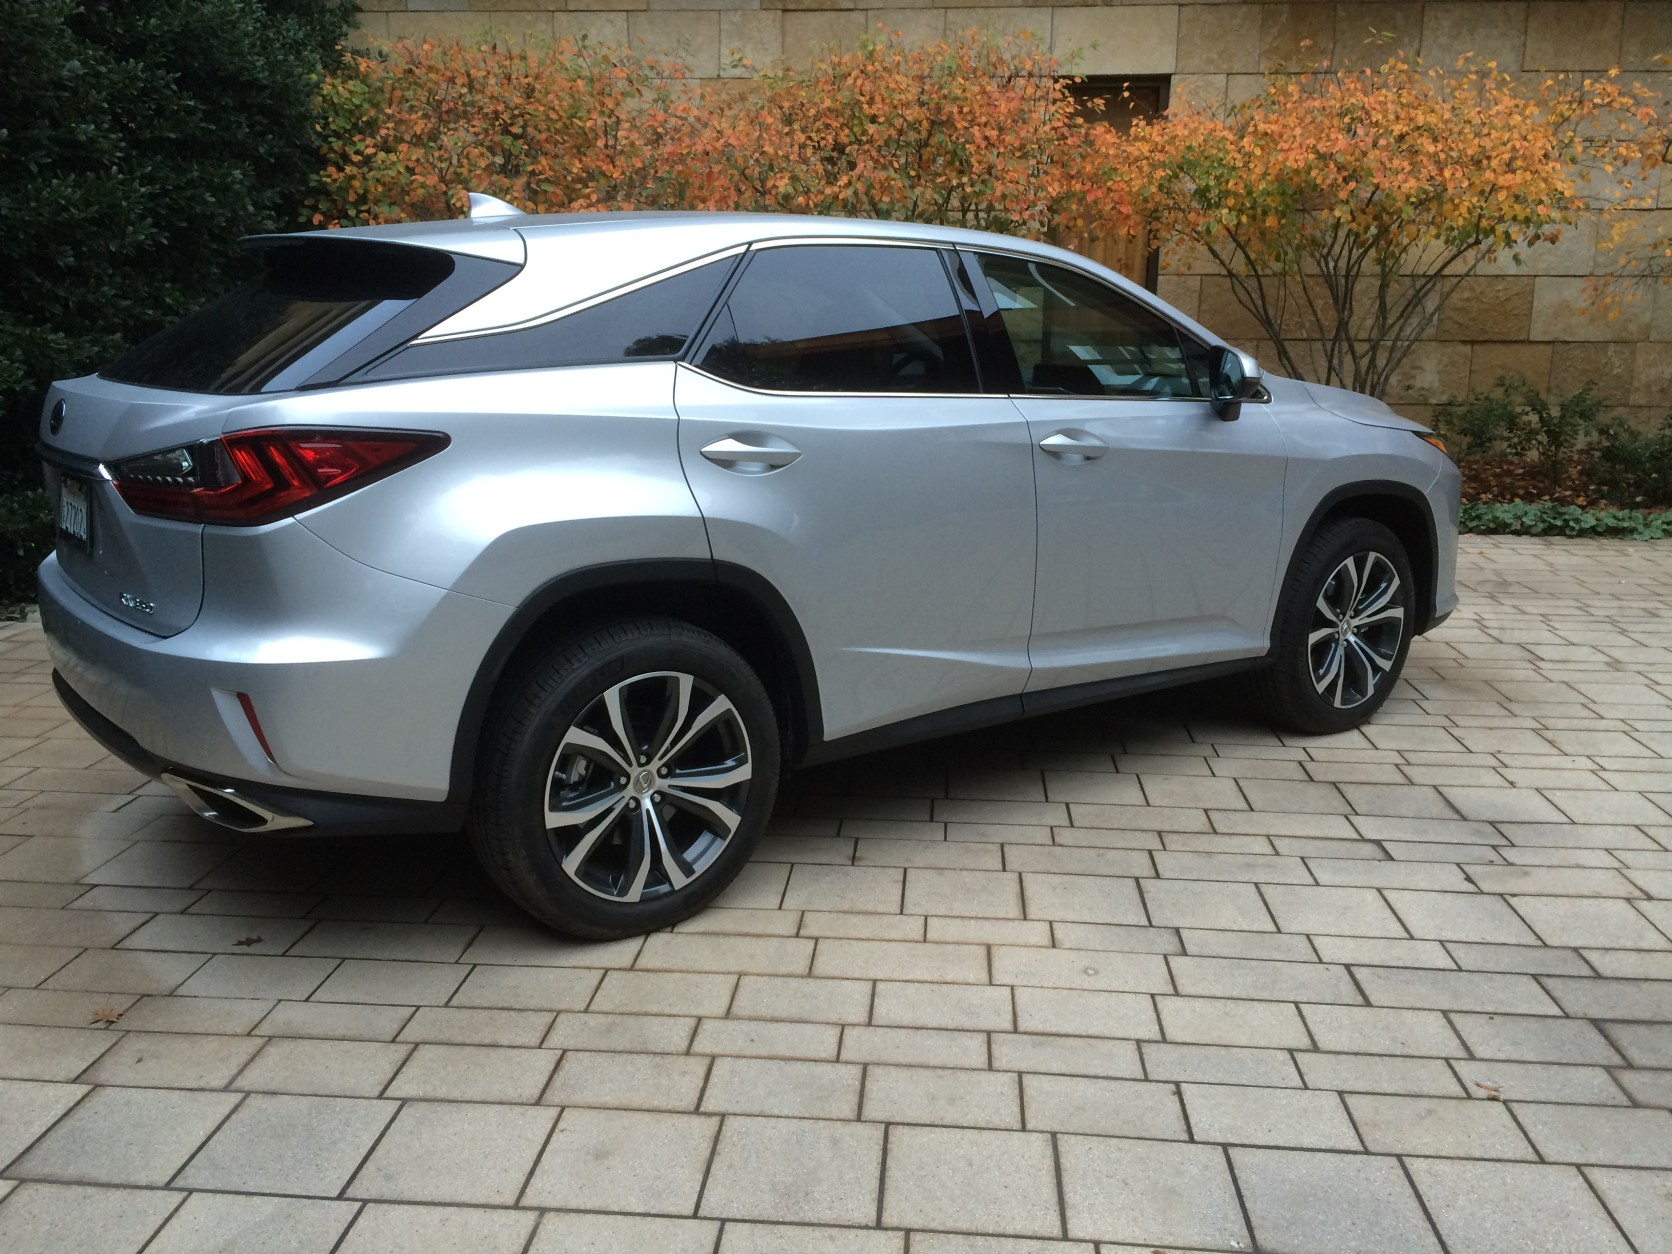 If you're looking for a luxury crossover, the new RX should be on your list to see and drive. (WTOP/Mike Parris)